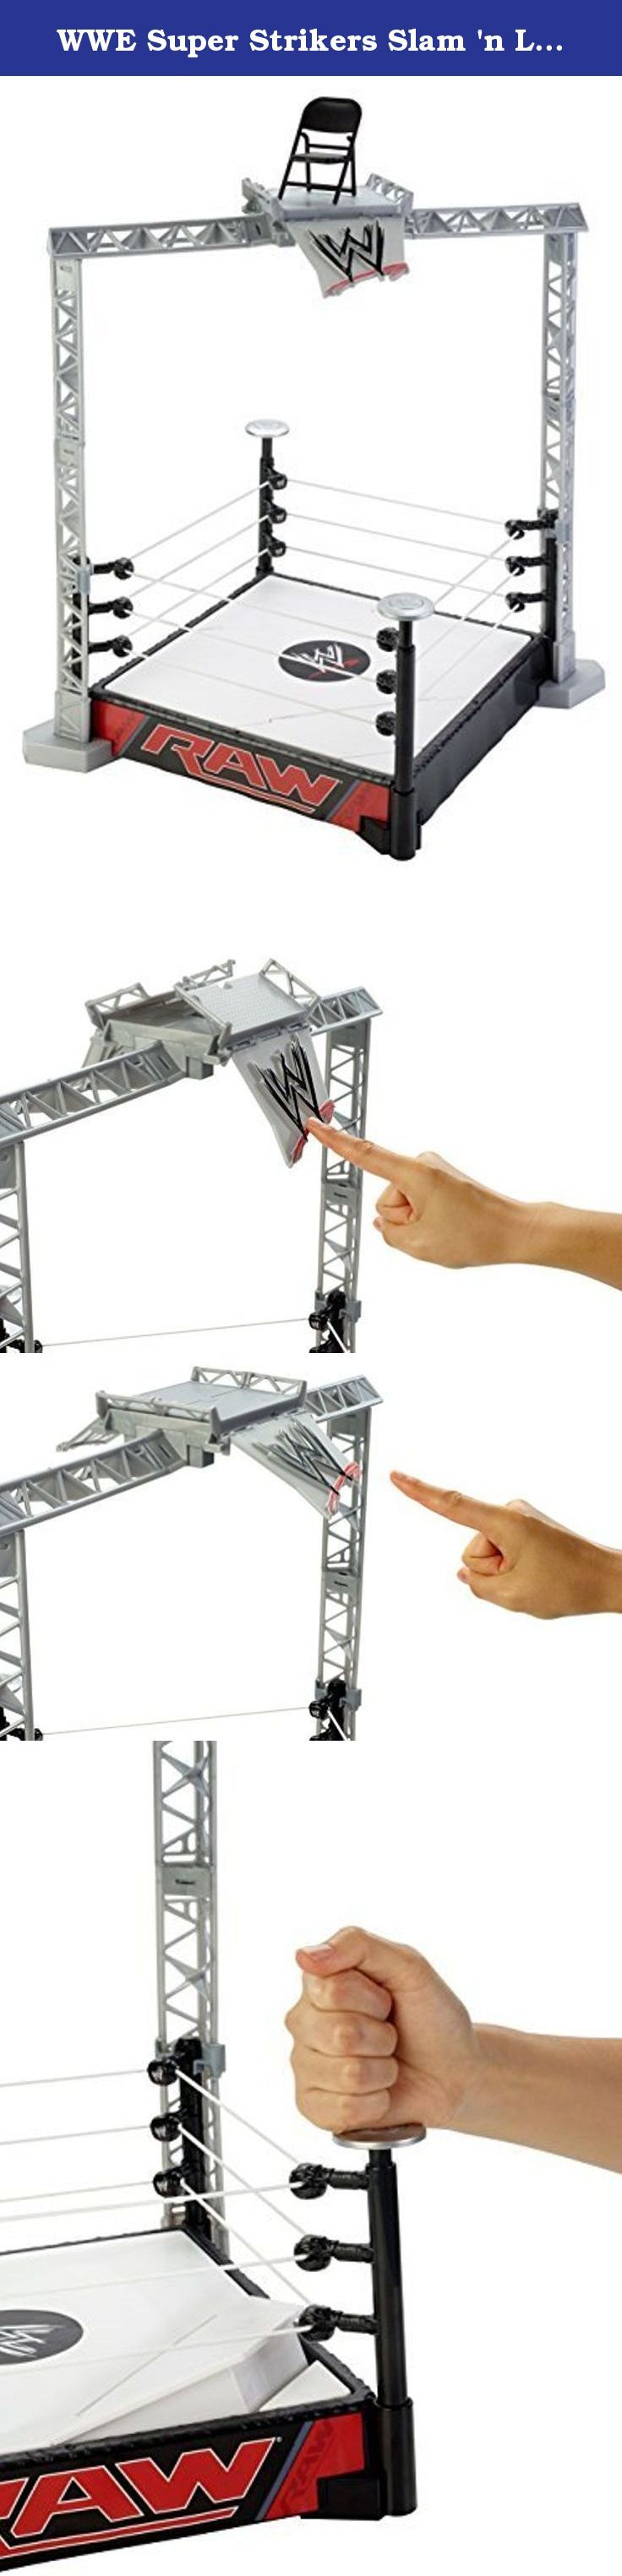 WWE Super Strikers Slam 'n Launch Arena Playset. It's shipped off from Japan.